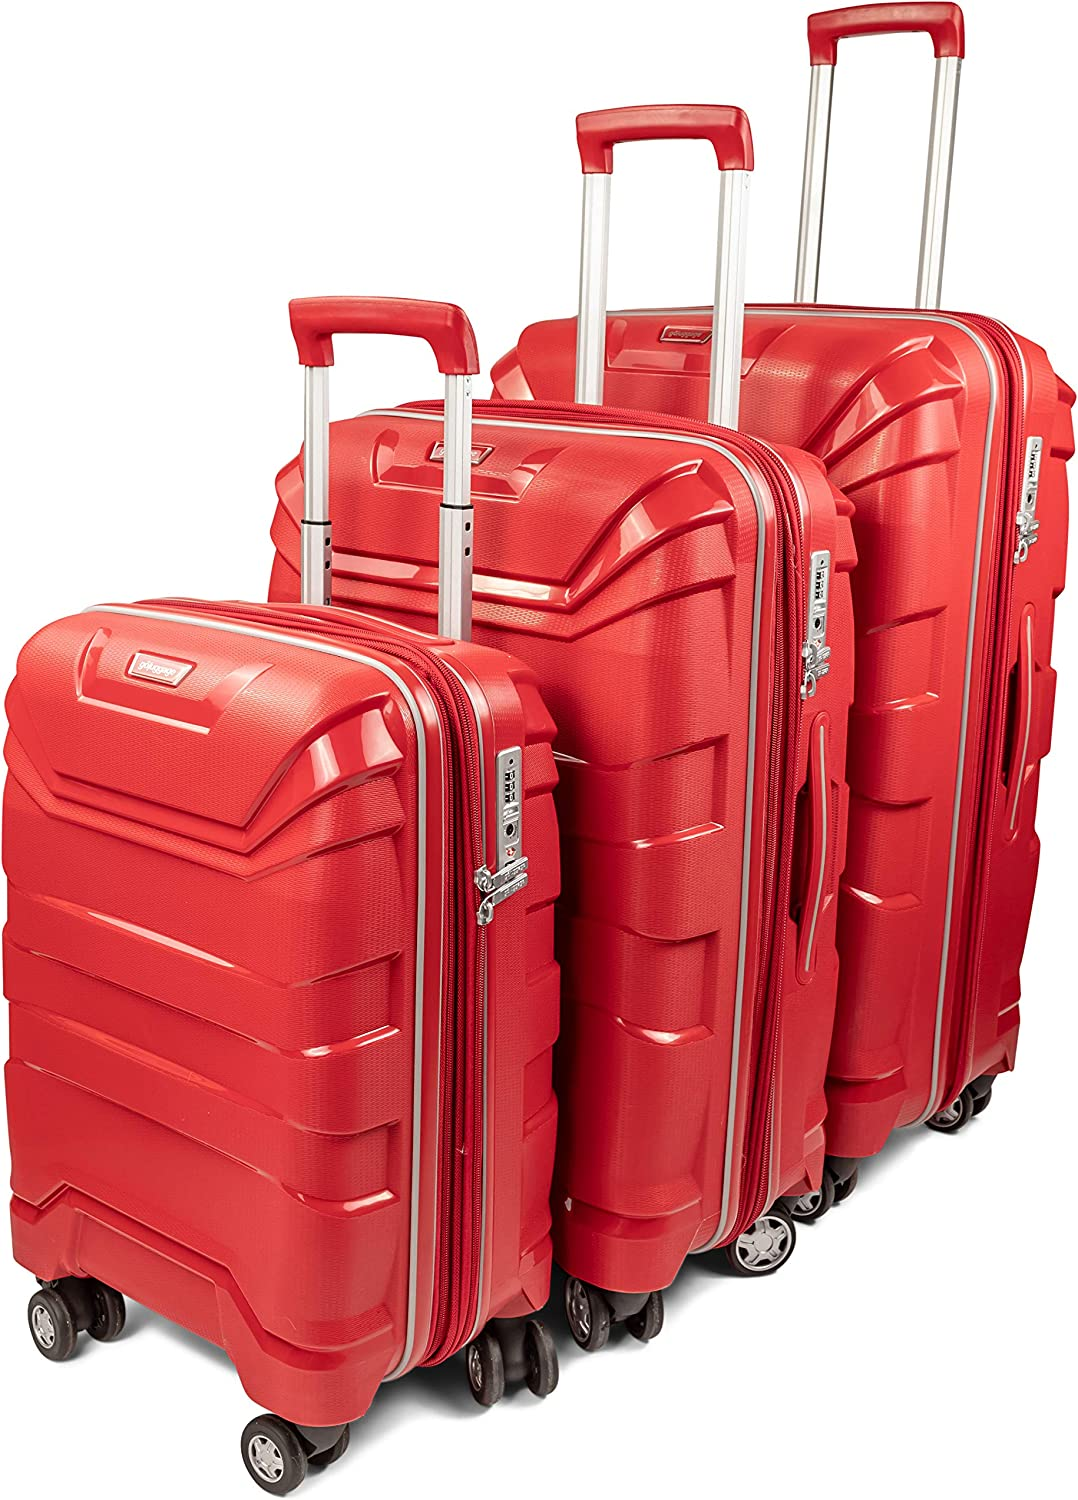 GoLuggage Aspire Hard Suitcase Set Higest Quality Large Carry On Hard Travel Case With Wheels Best Deal For The Best Quality Black